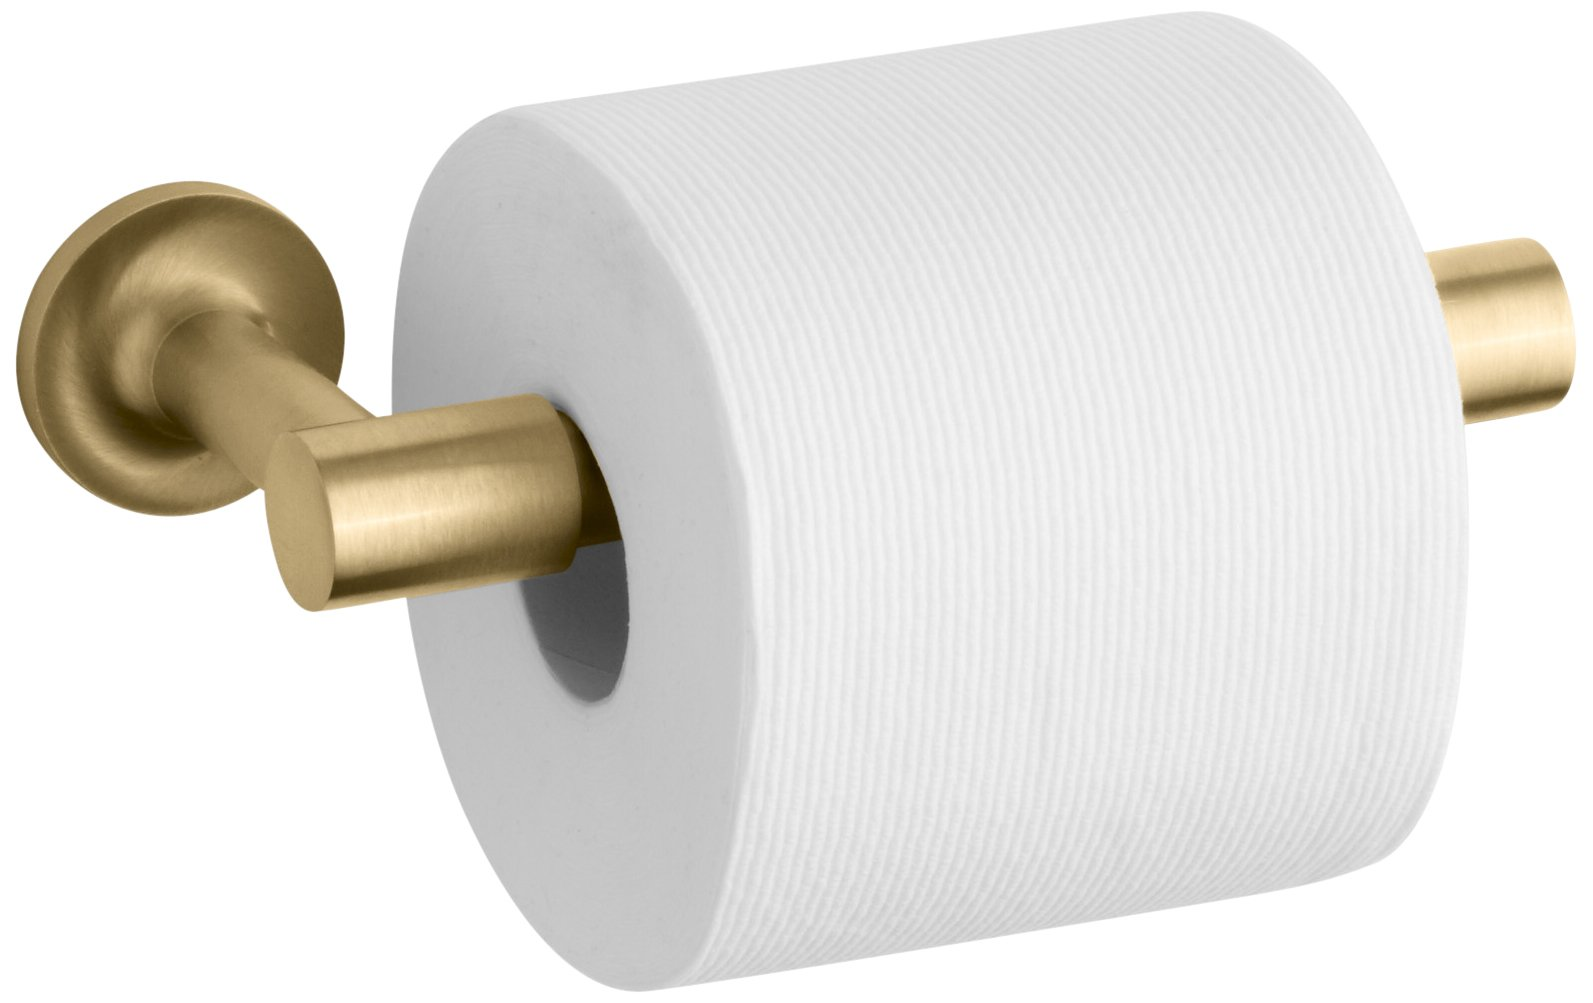 KOHLER K-14377-BGD Purist Pivoting Toilet Tissue Holder, Vibrant Modern Brushed Gold